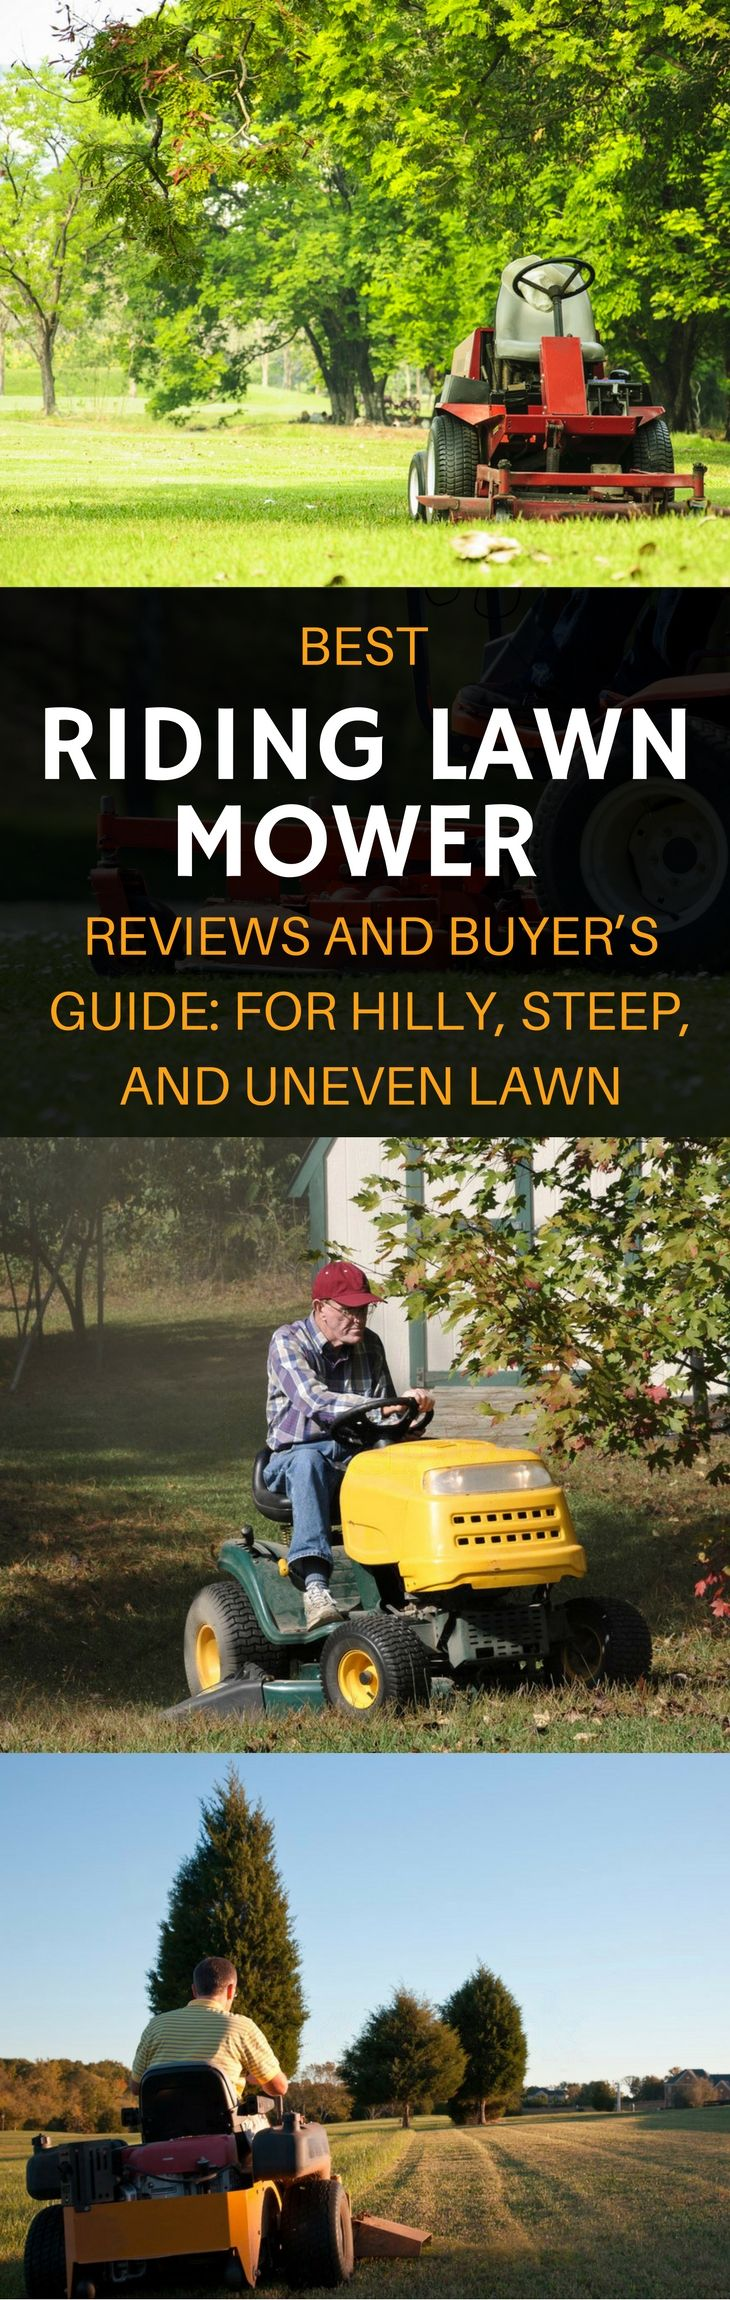 Best Riding Lawn Mower For the Money 2017: For Hilly, Steep and Uneven Lawn! https://gardenambition.com/best-riding-lawn-mower/